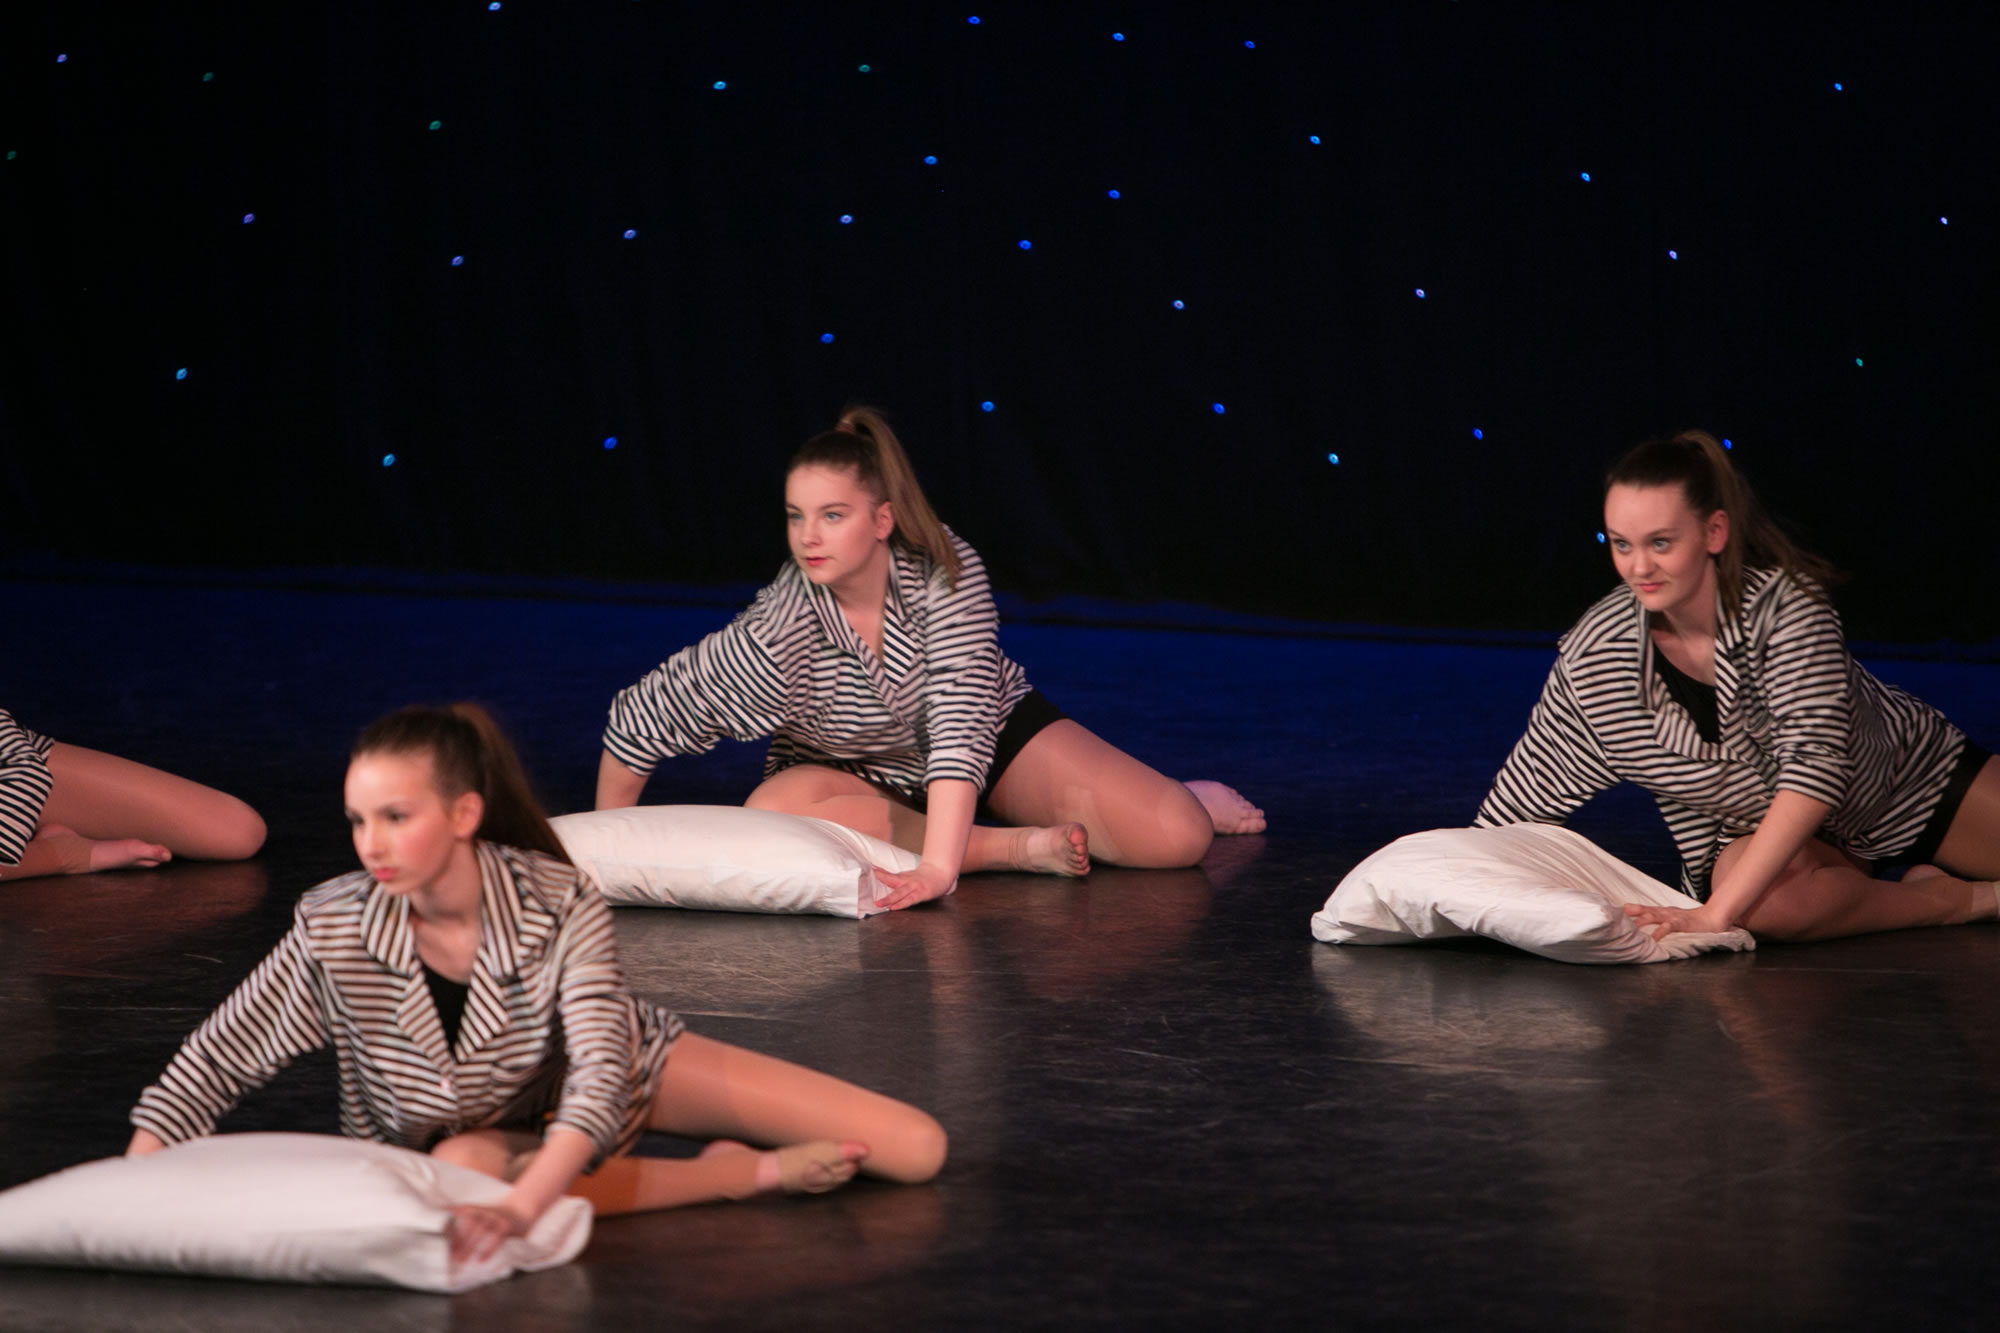 Hitchin_School_of_Dance_Show_2019-SM1_2429.jpg